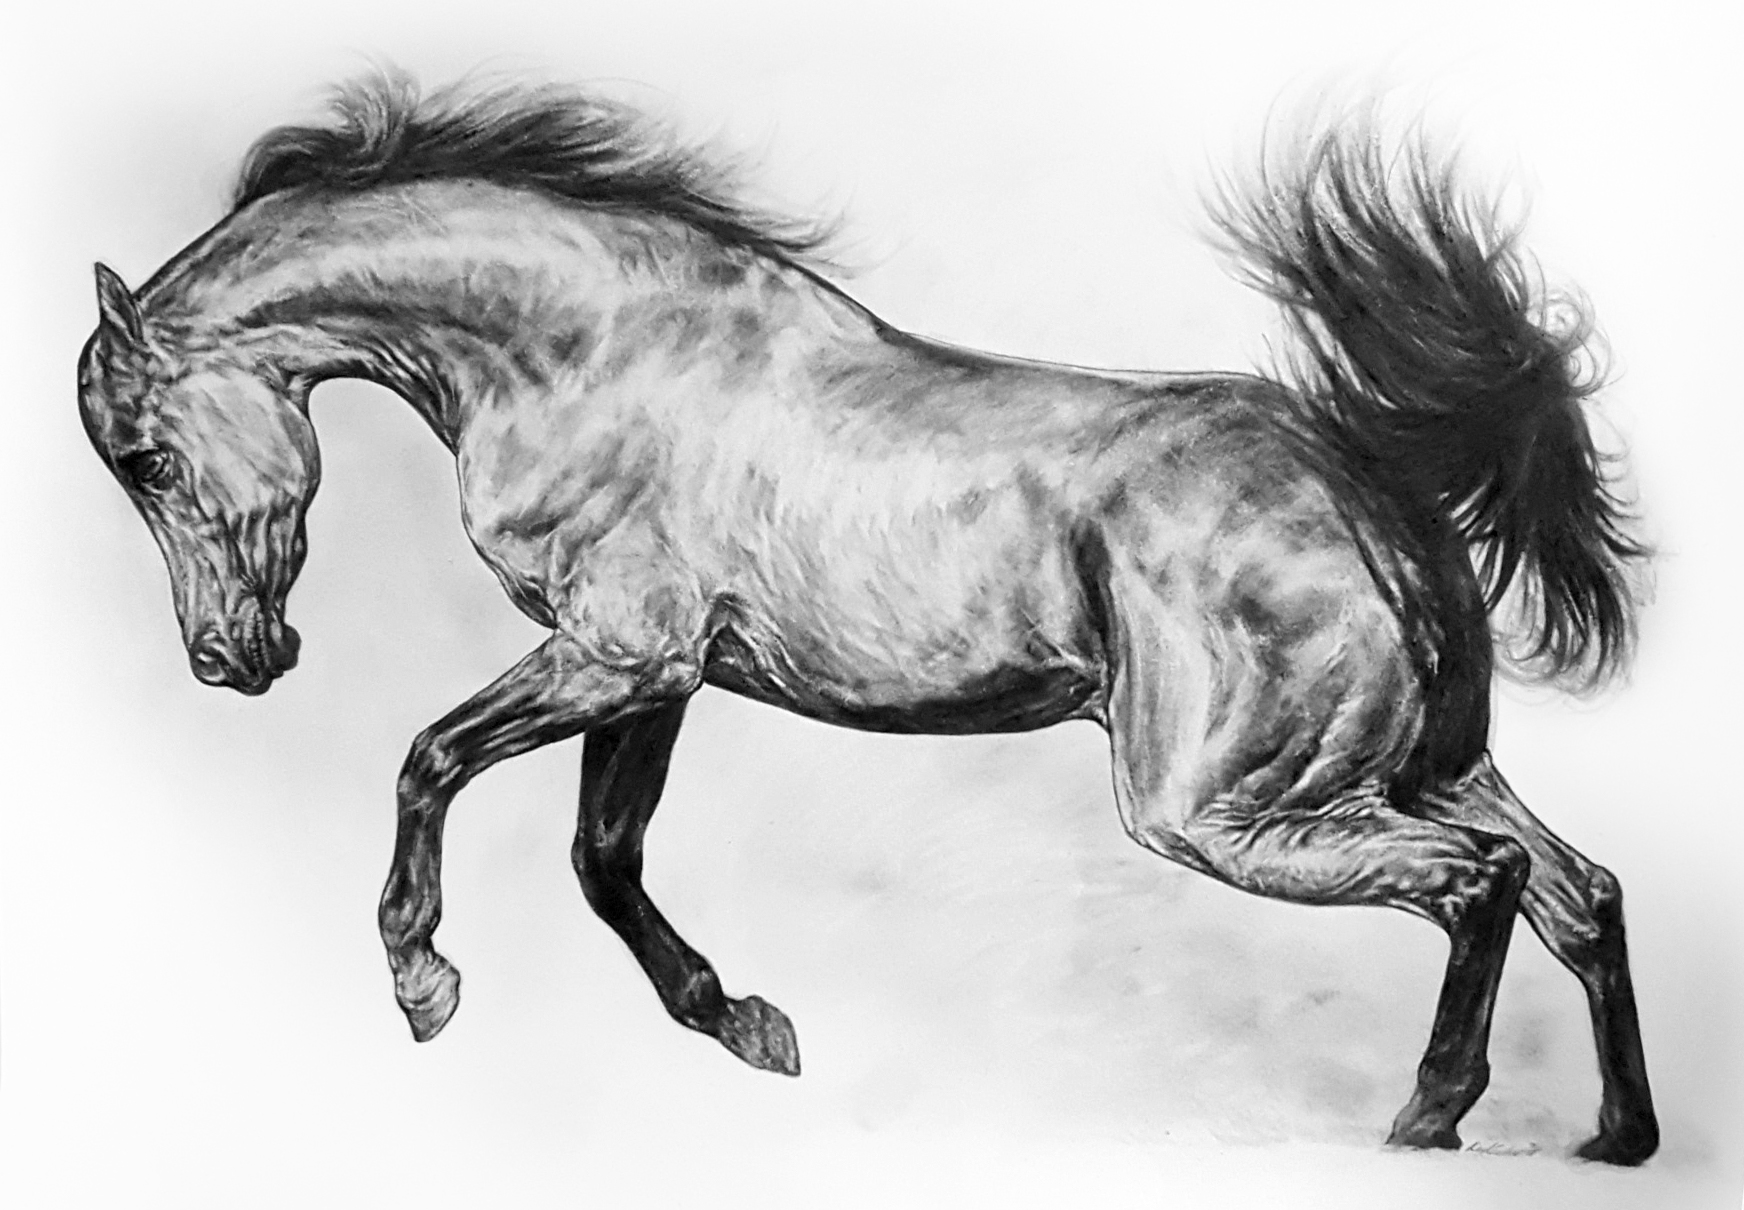 Lunging Stallion. 2018. Graphite on 300 GSM Fabriano Artistico Paper (90 x 120cm) AVAILABLE